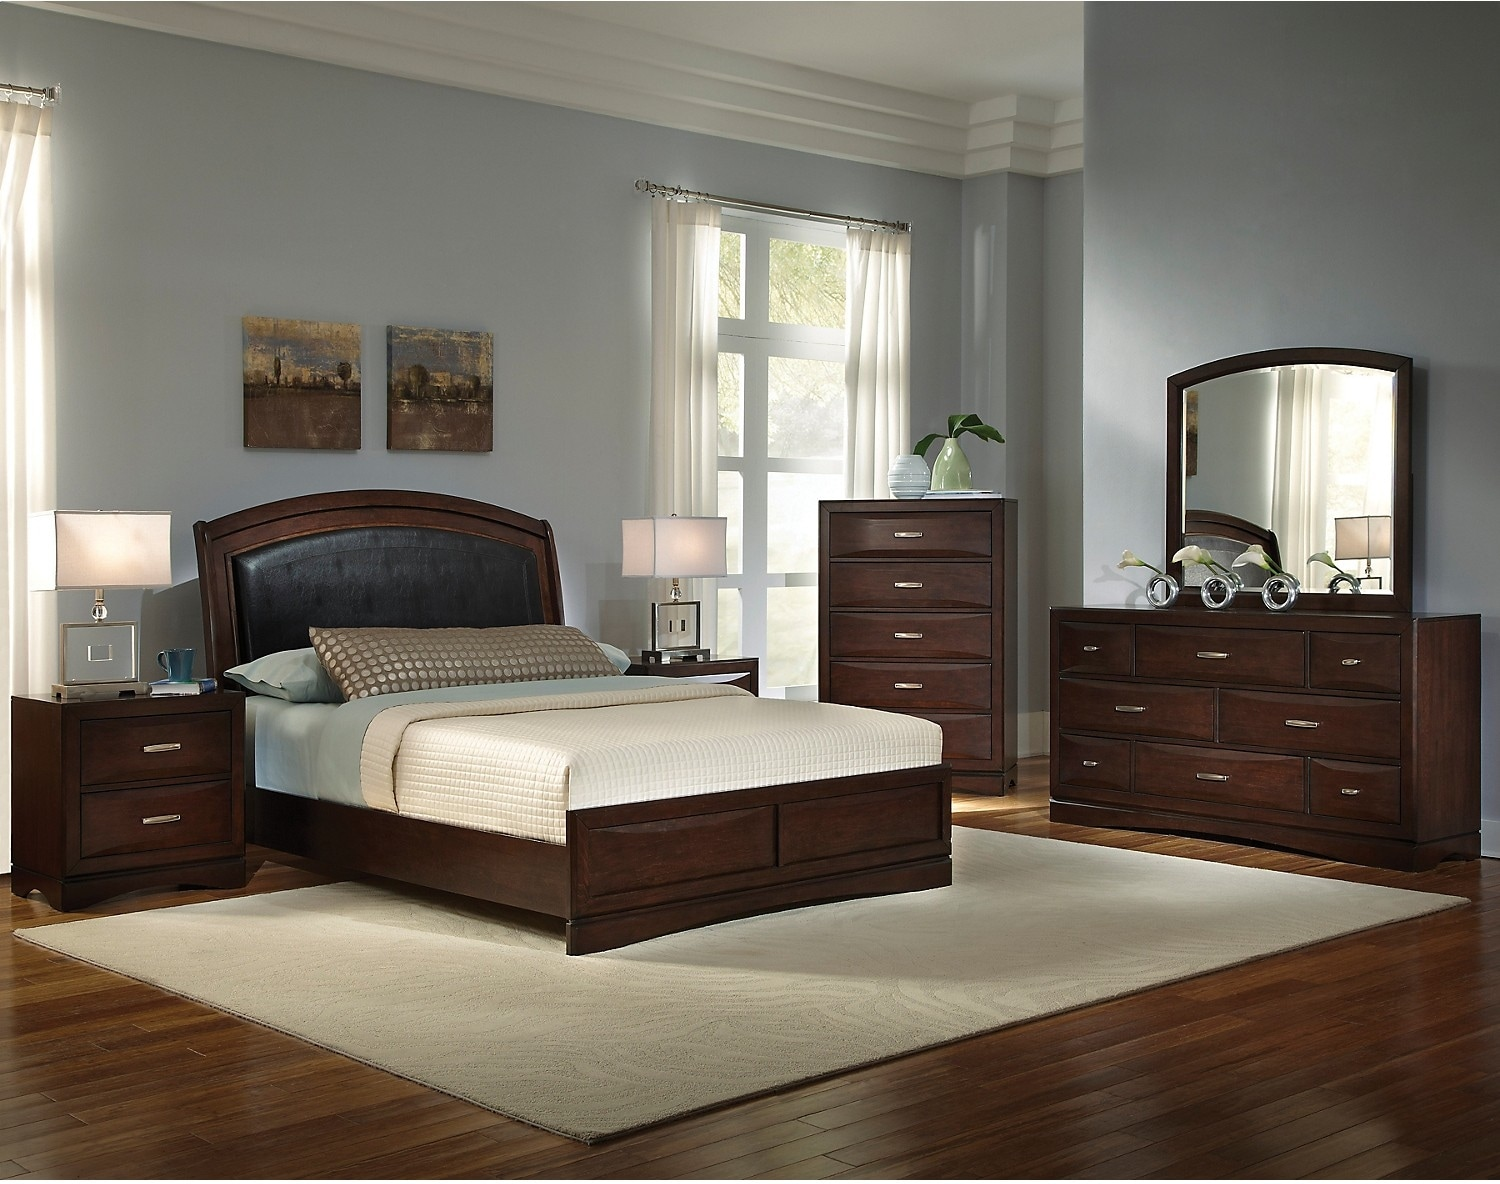 Beverly 8 piece queen bedroom set the brick for Bedroom furnishings